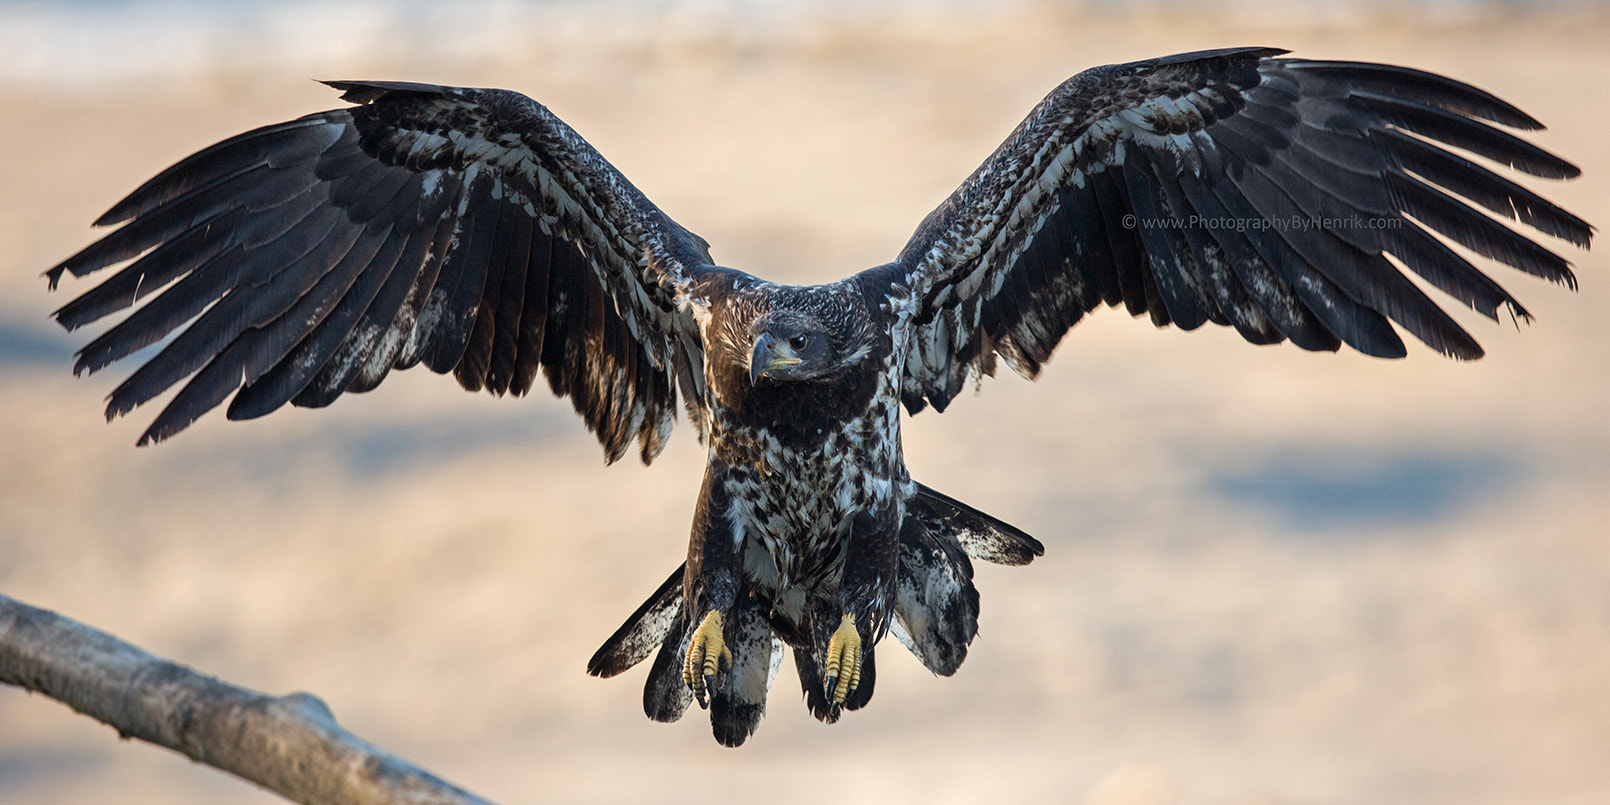 Photograph Juvenile Bald Eagle by Henrik Nilsson on 500px